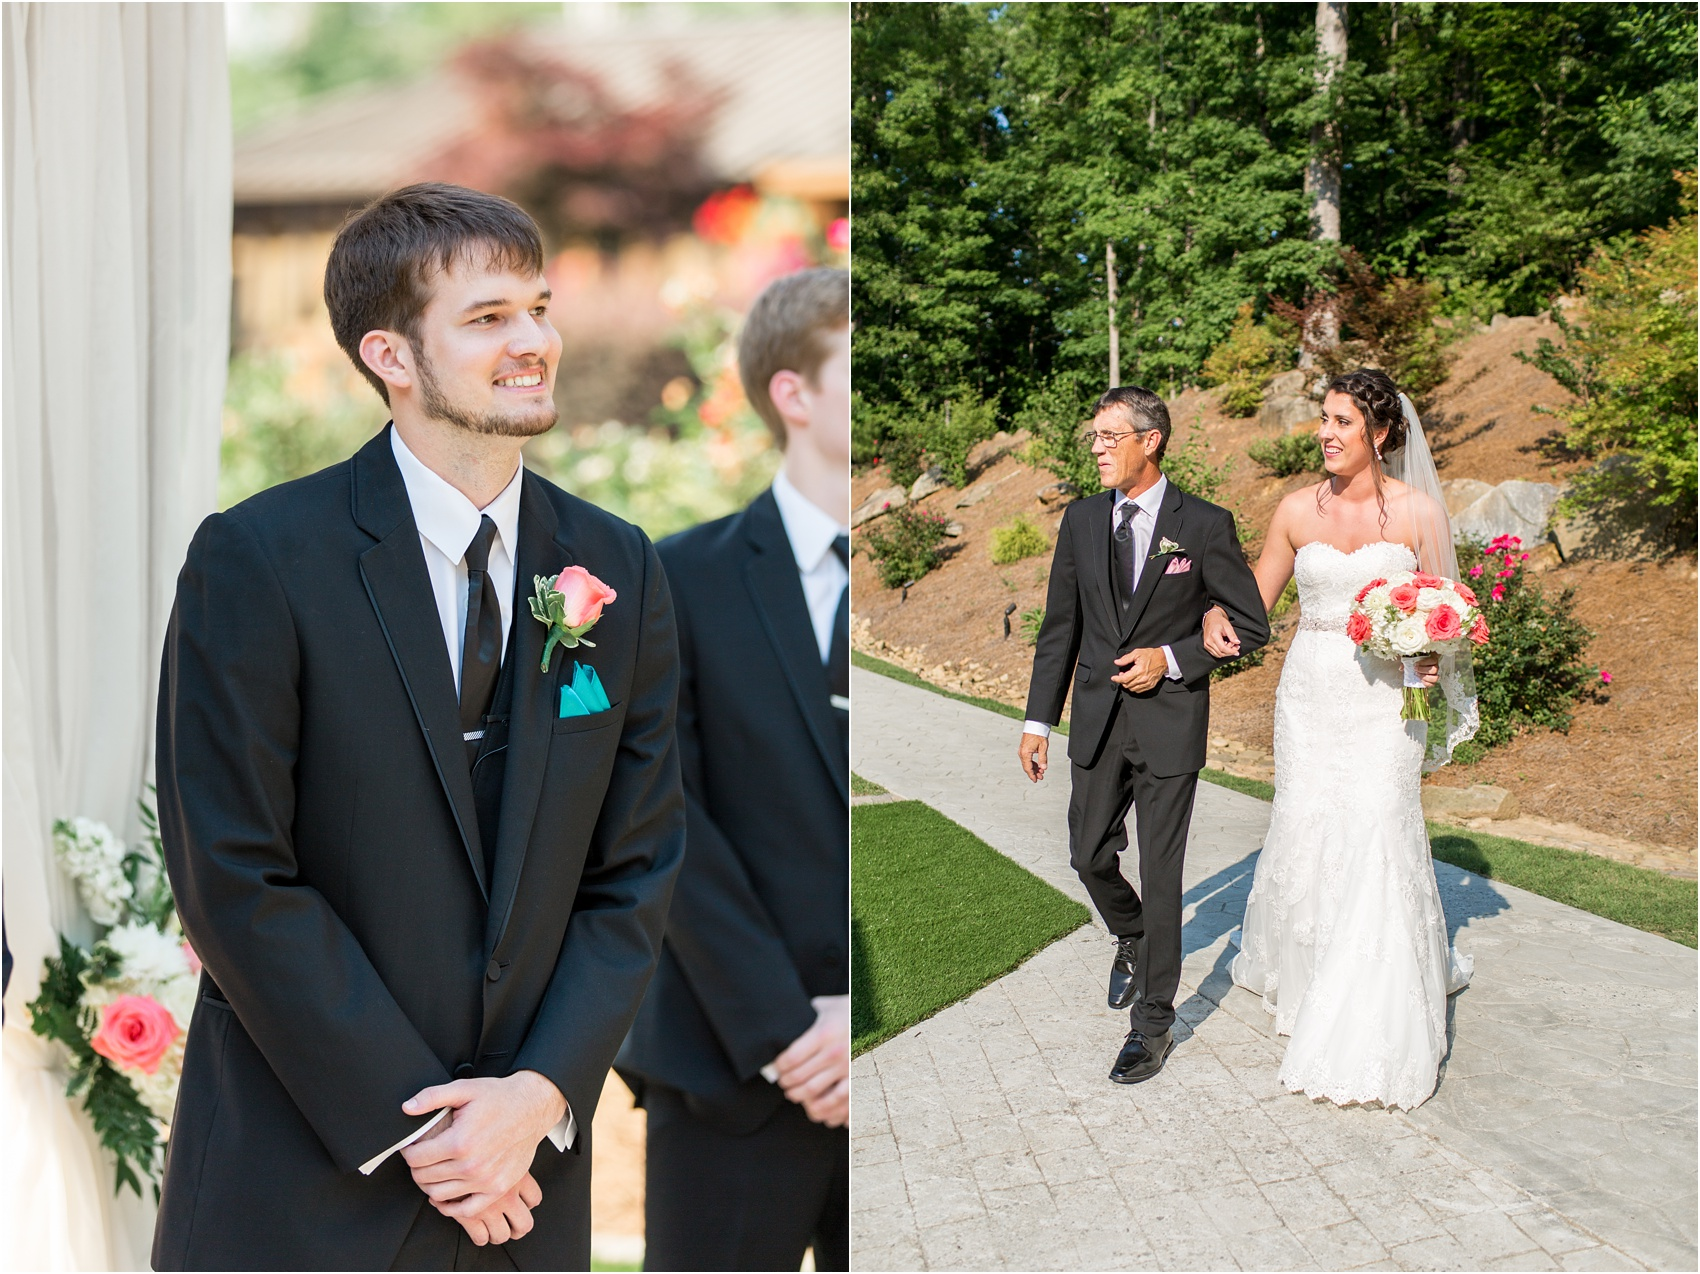 Savannah Eve Photography- Roberts-Brown Wedding- Sneak Peek-44.jpg